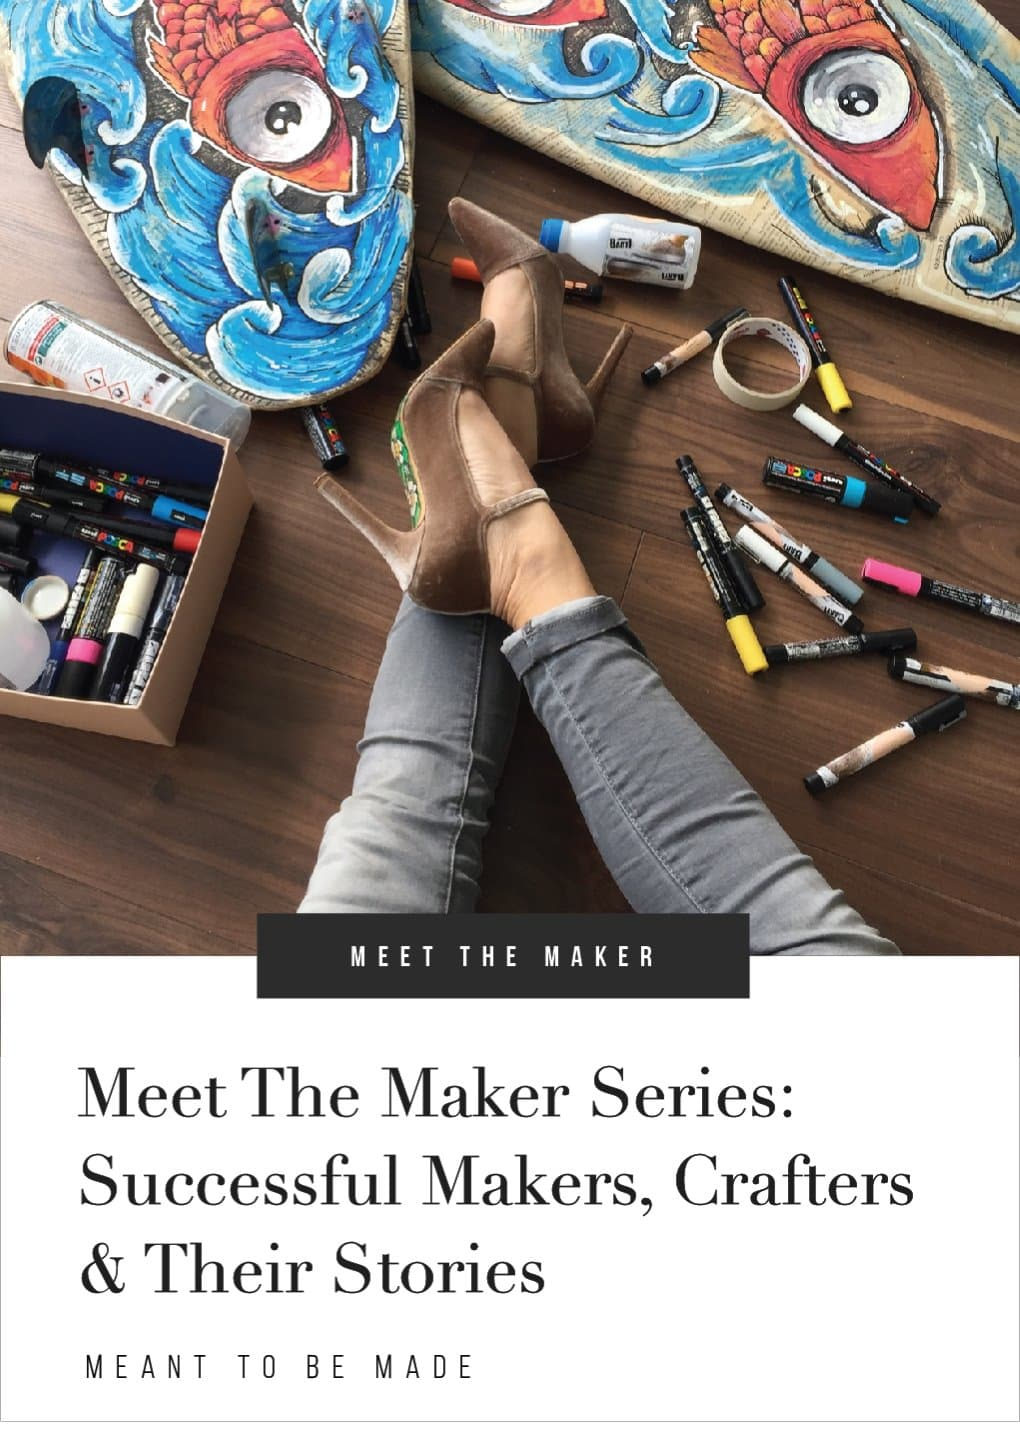 Meet The Maker Series Successful Makers Crafters & Their Stories